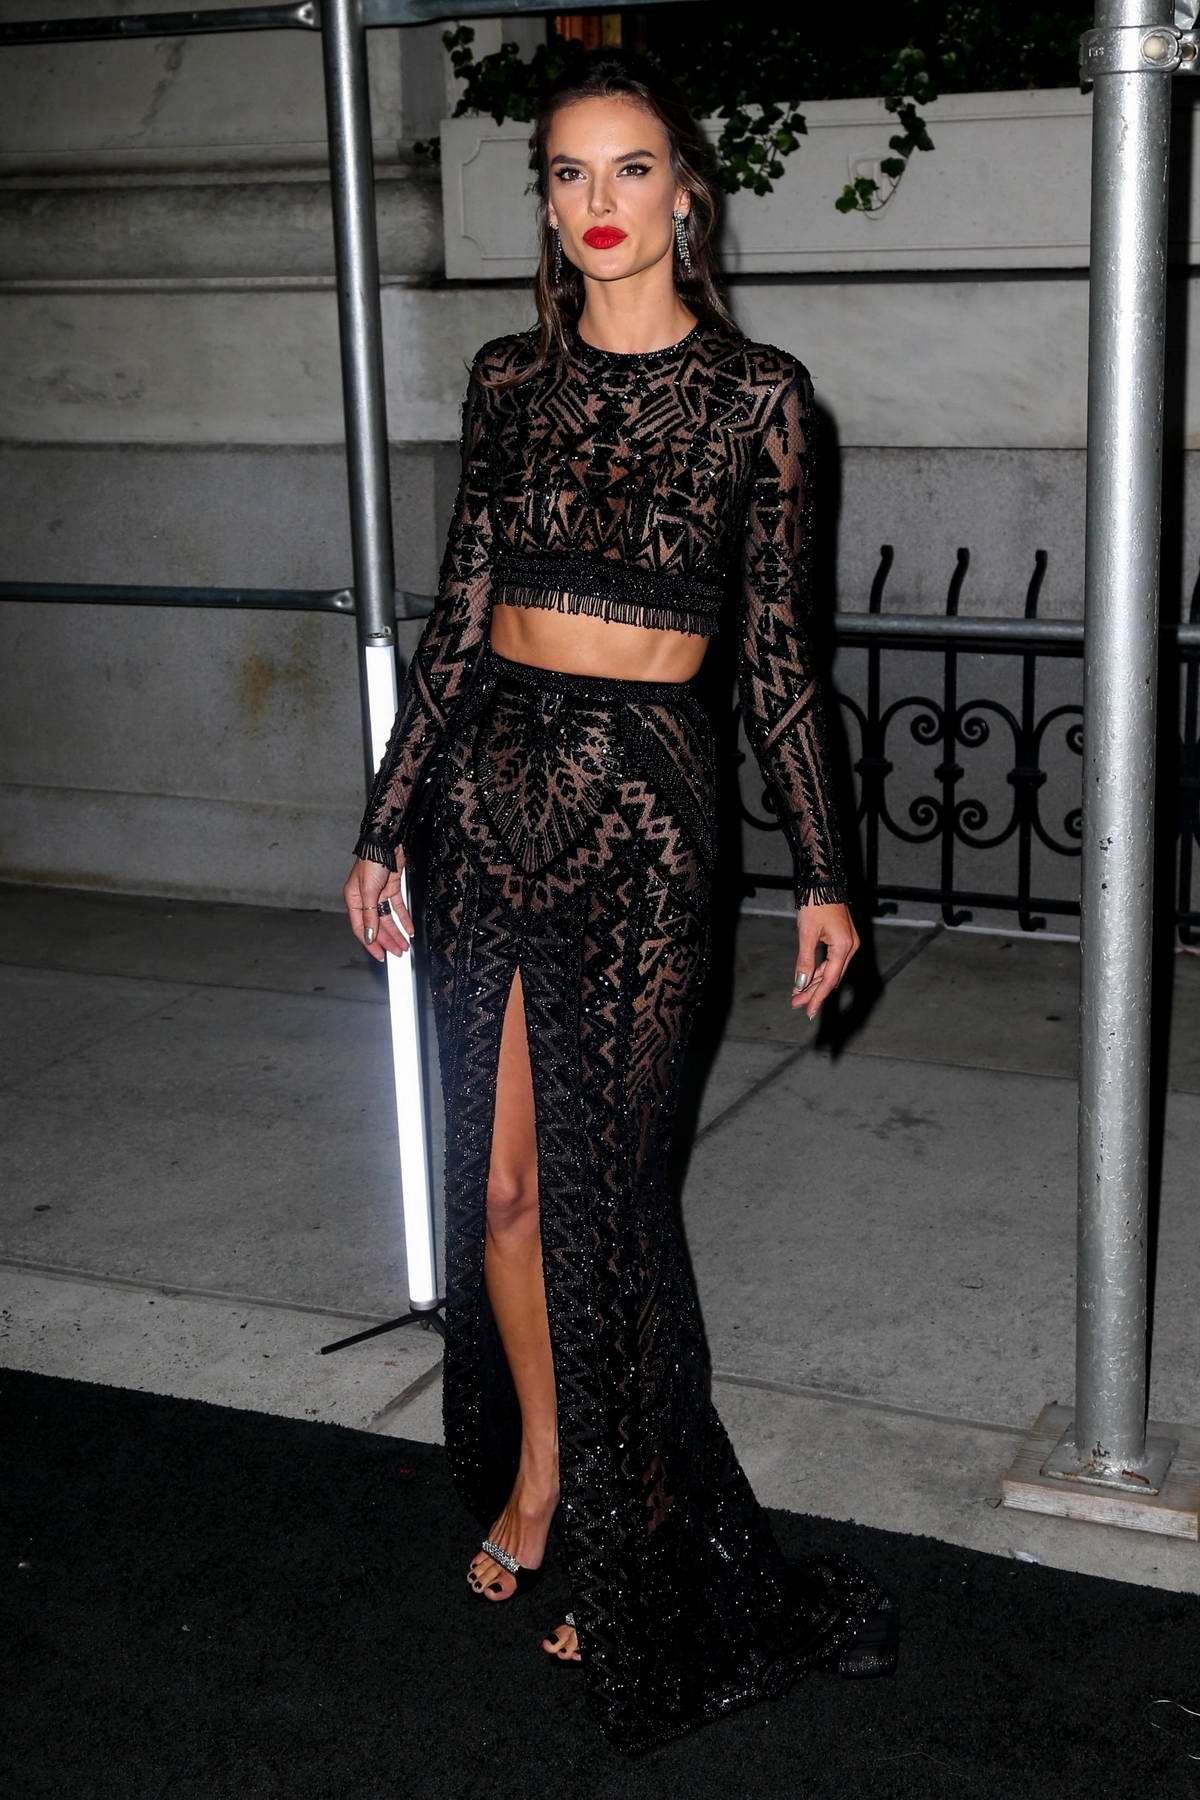 Alessandra Ambrosio attends Harper's Bazaar ICONS party NYFW Spring/Summer 2019 in New York City